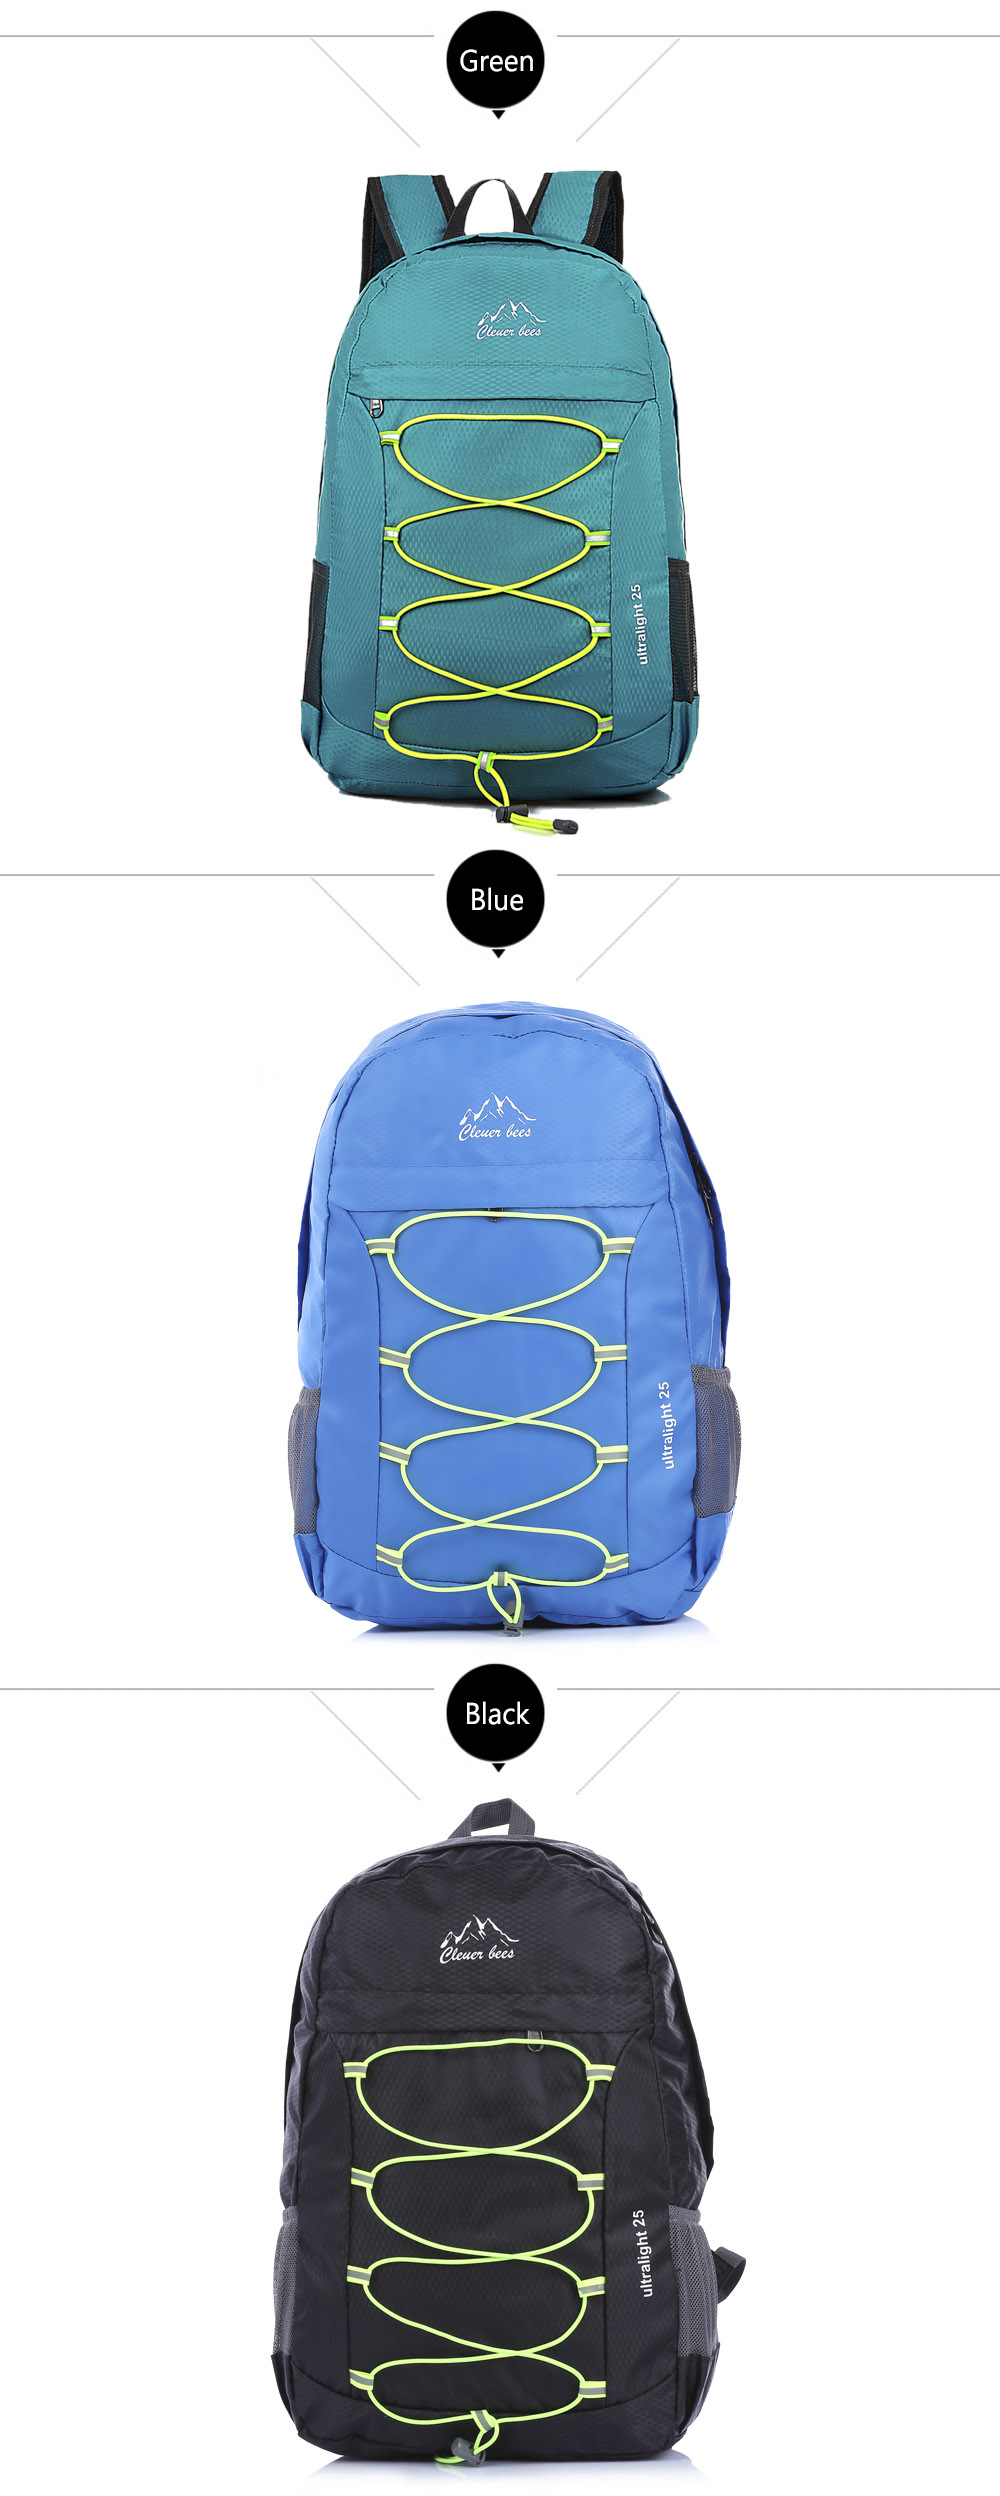 CLEVERBEES Outdoor Waterproof Foldable Hiking Running Backpack